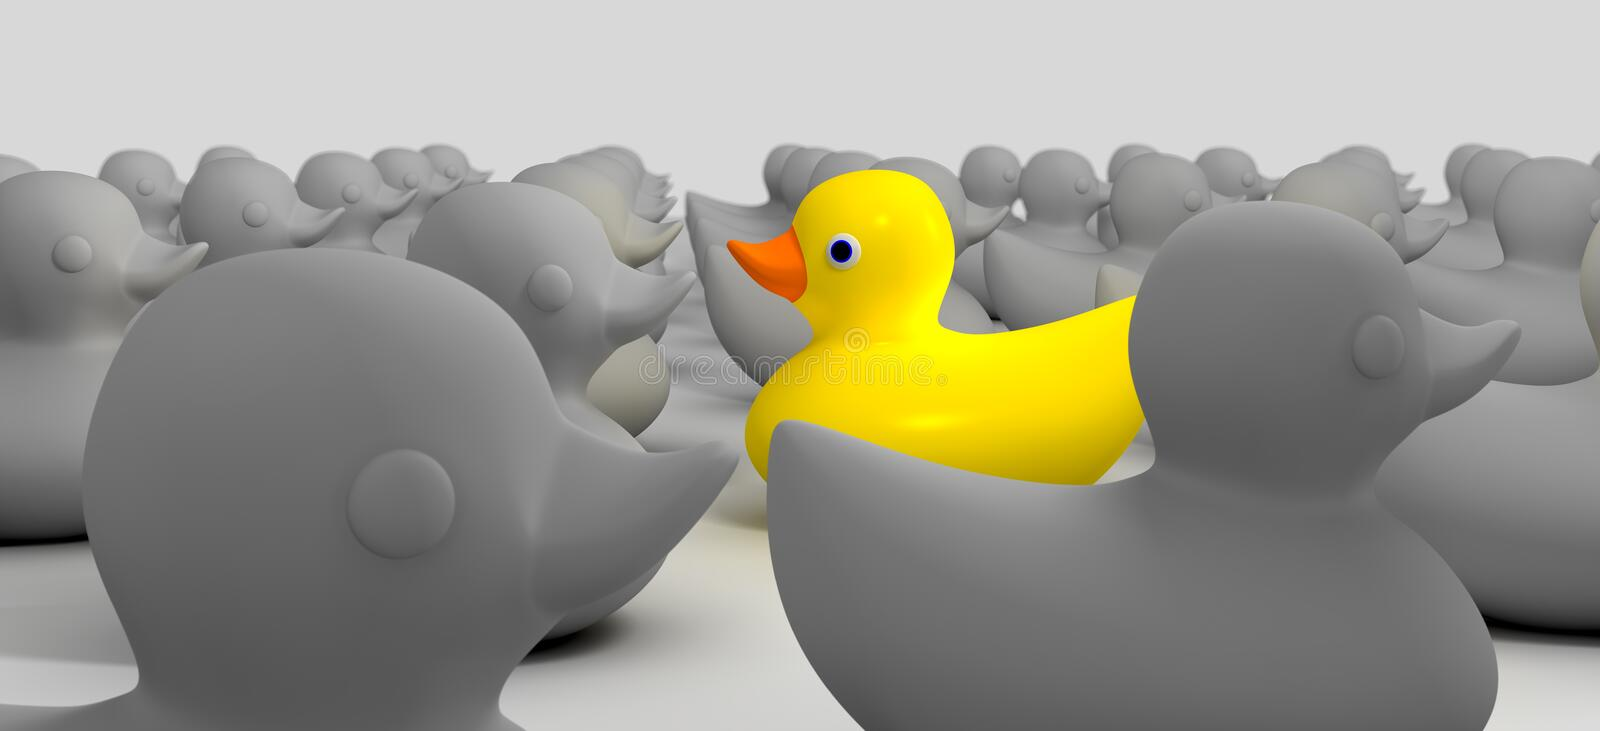 Rubber Duck Against The Flow. A non-conformist depiction of a yellow rubber bath duck swimming against the flow of a sea of grey rubber ducks royalty free illustration